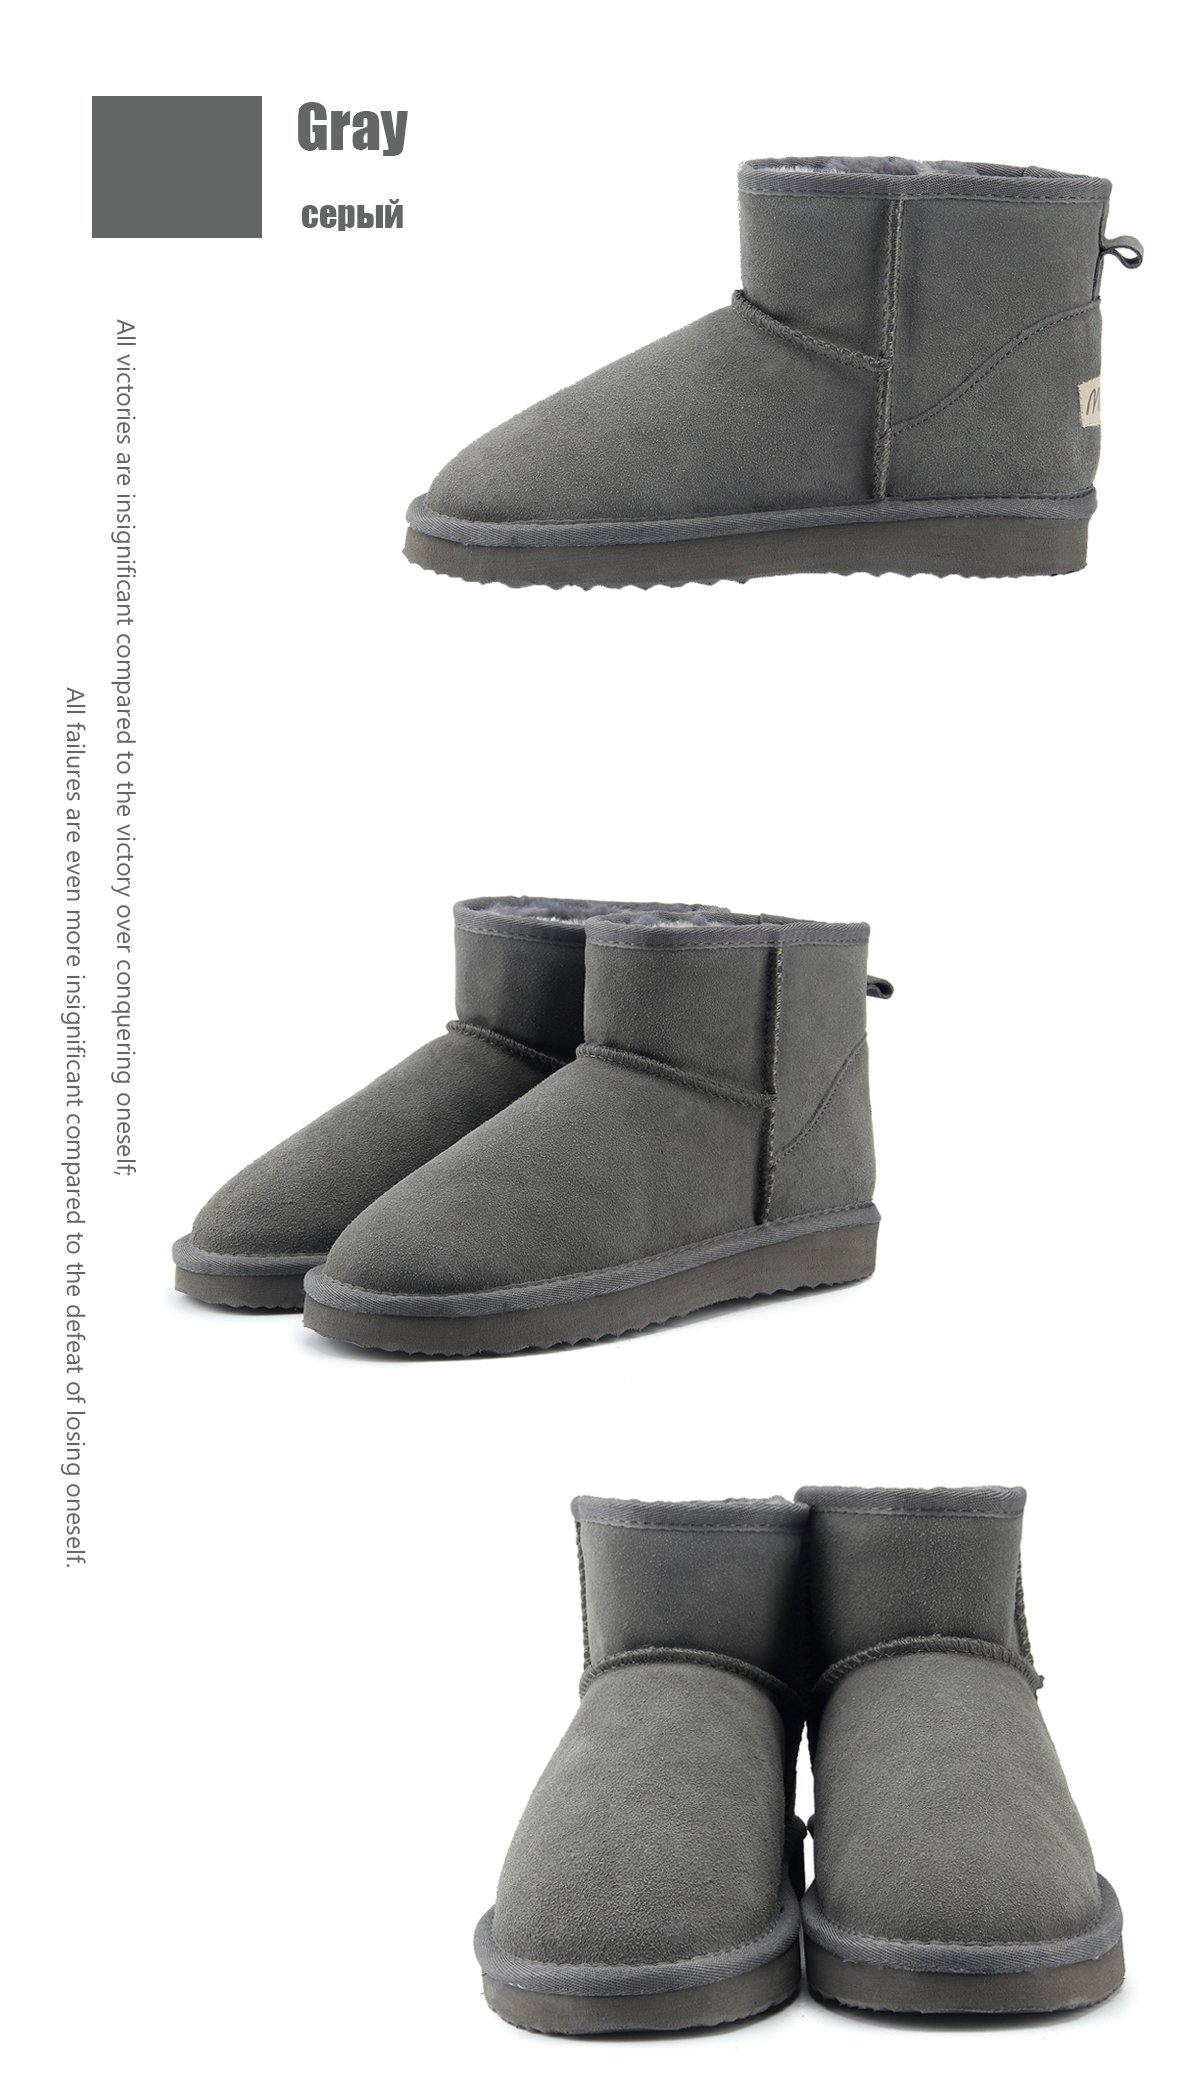 MBR FORCE Women Cowhide Leather Warm Winter Boots